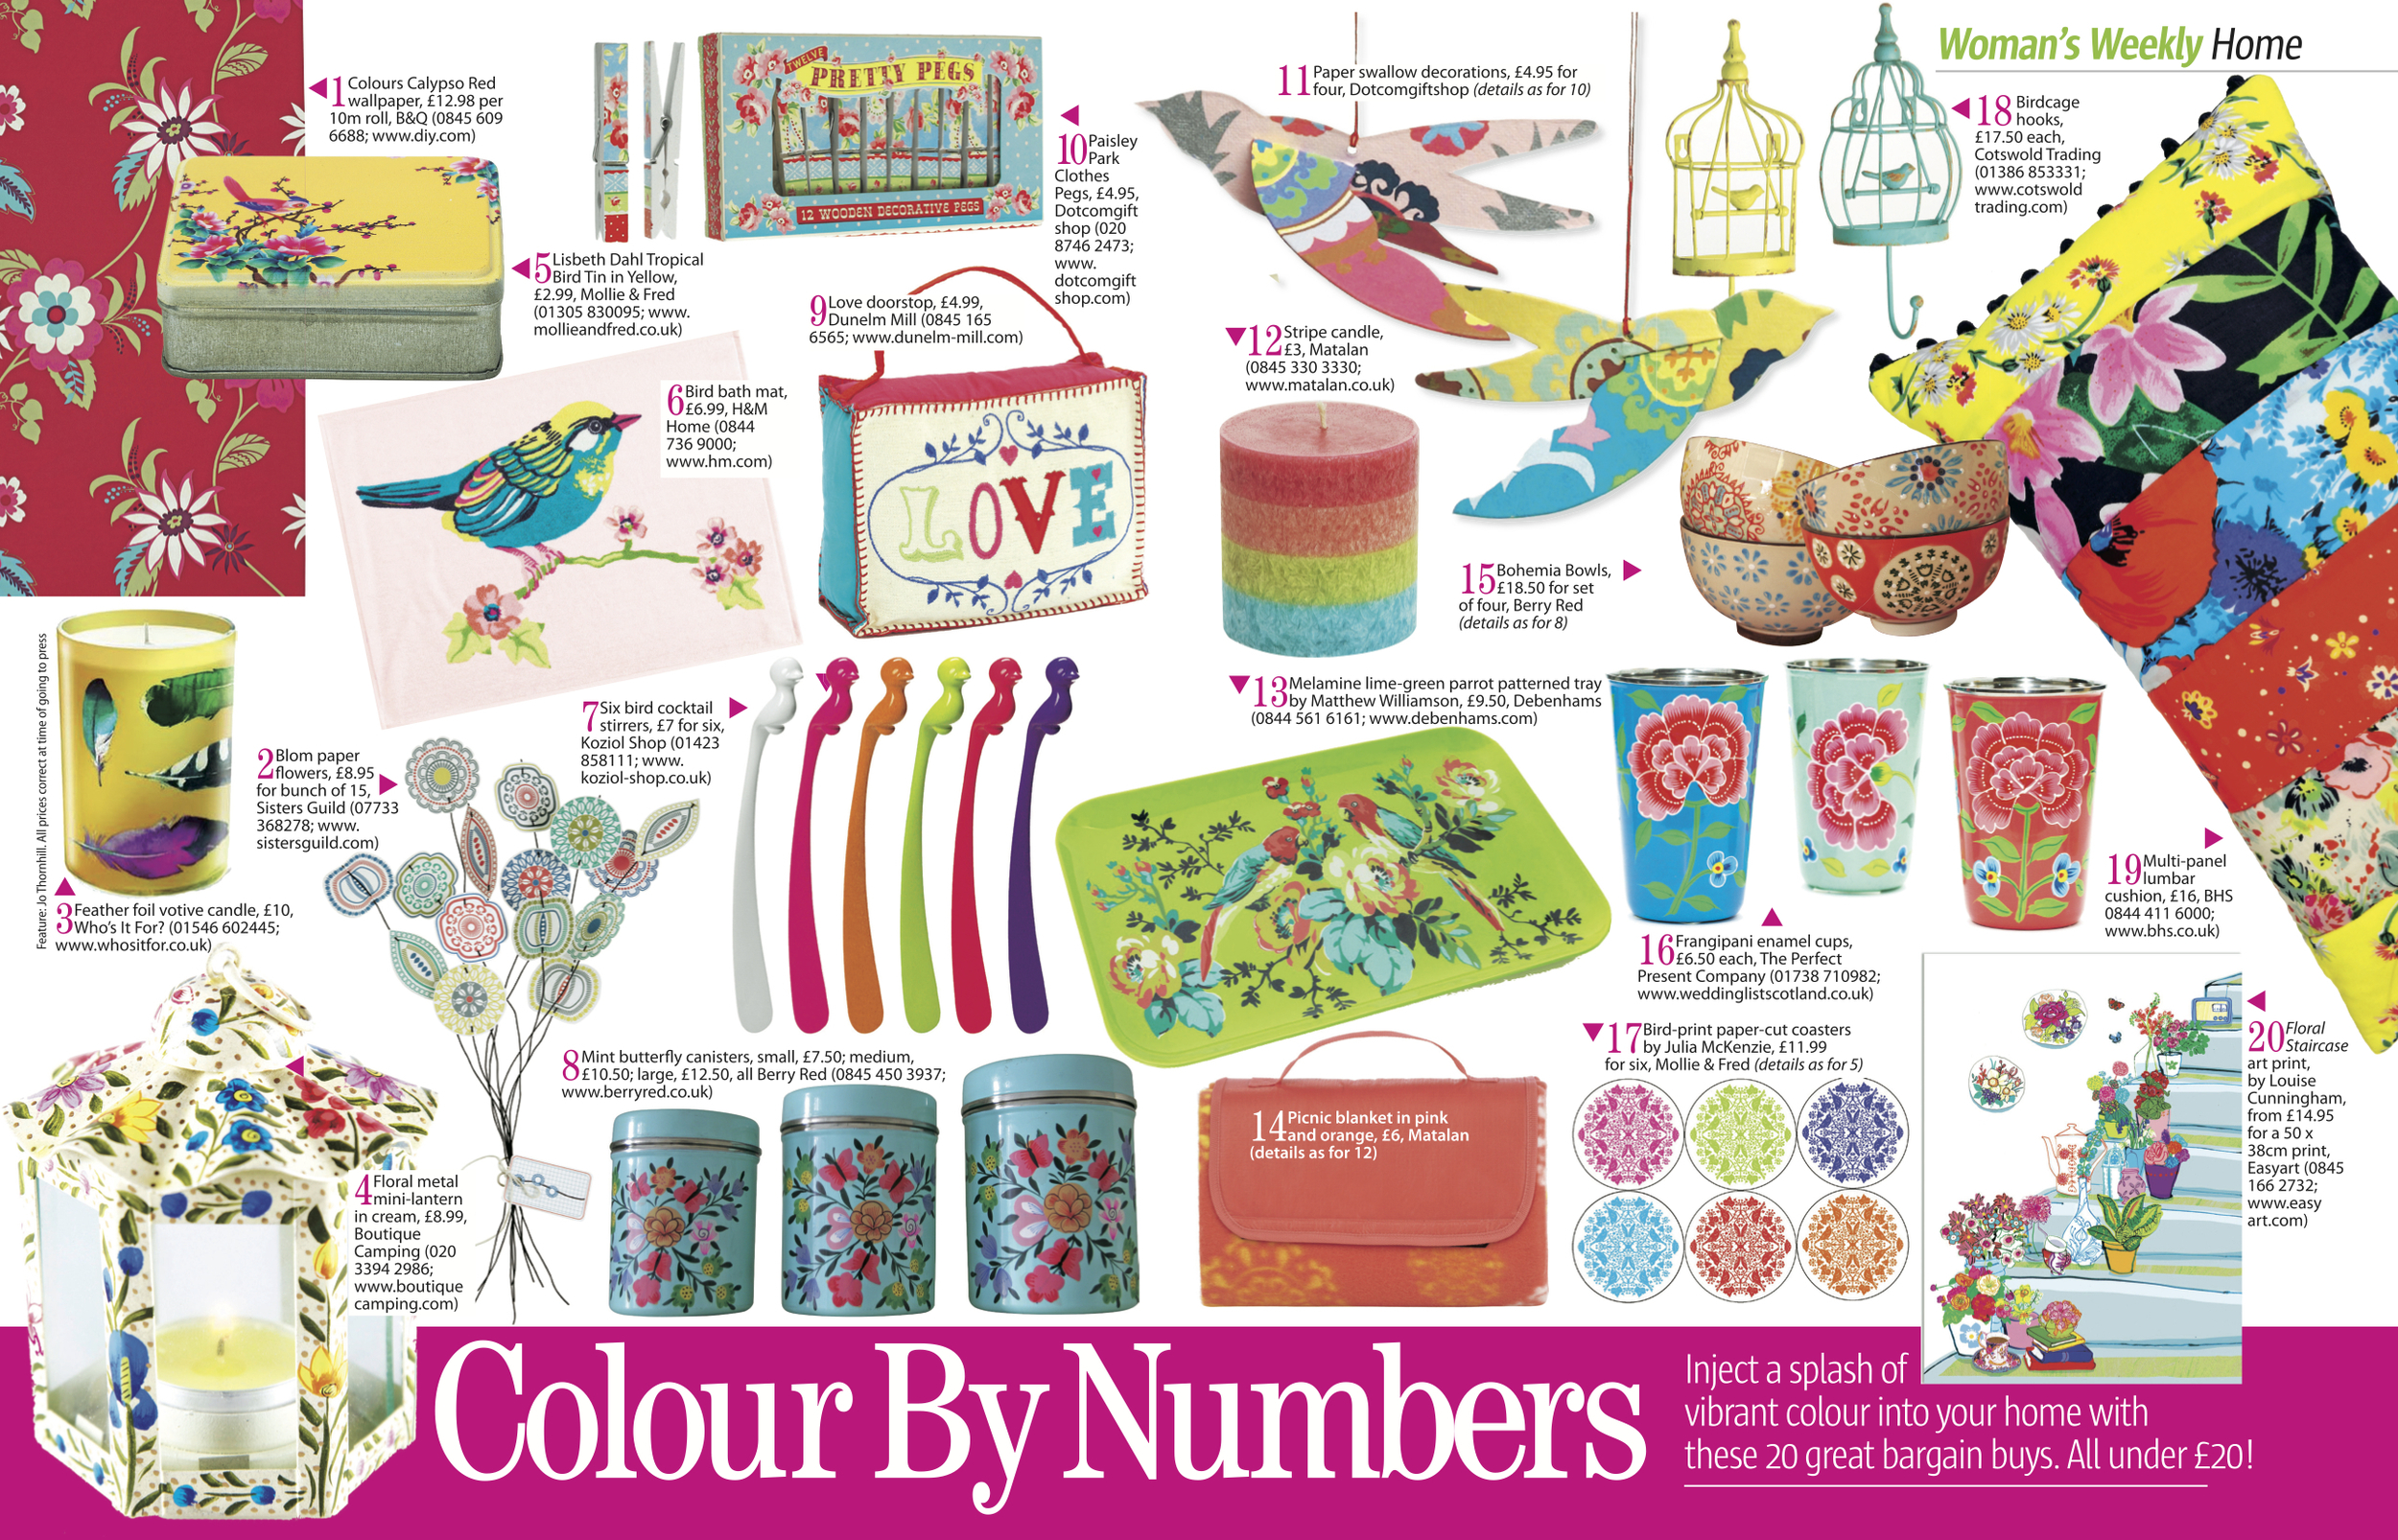 6. Woman's Weekly magazine Colour by Numbers feature by Interior Stylist Joanna Thornhill.jpeg